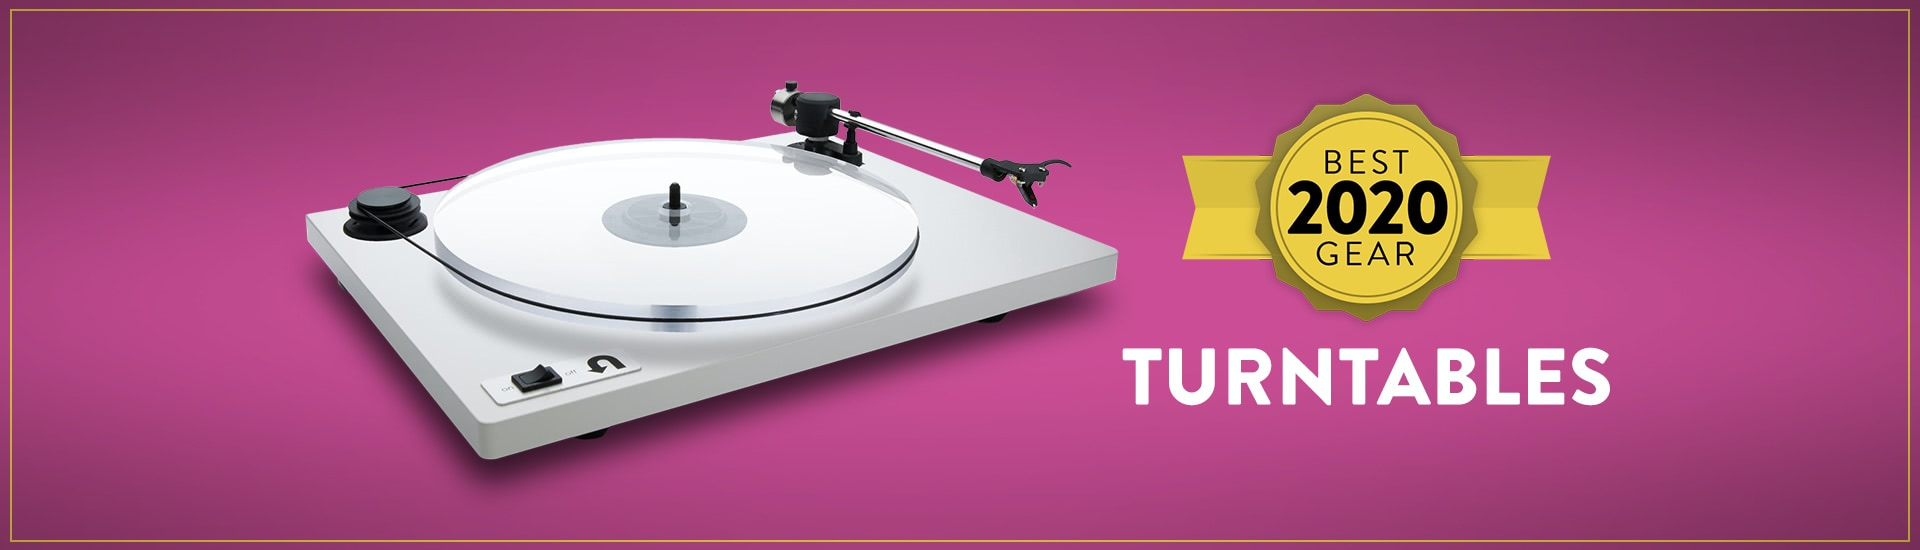 20191211 2020 best turntables blog header